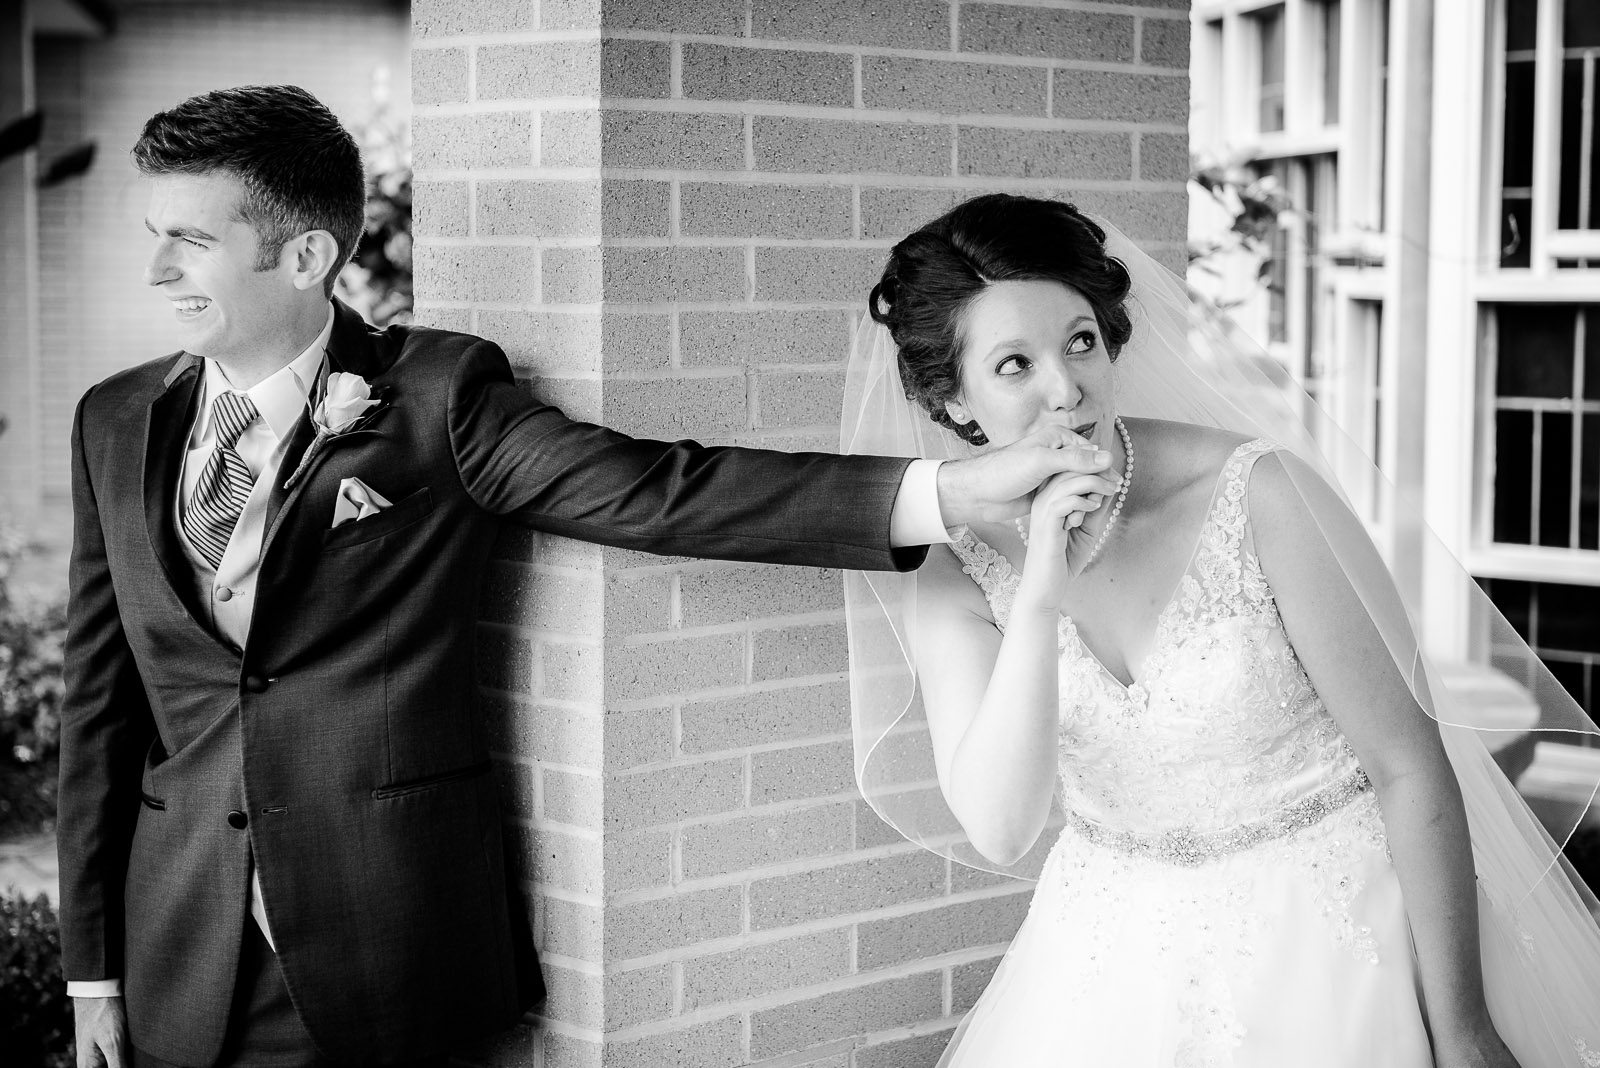 Eric_and_Christy_Photography_Blog_Wedding_Kelly_Michael-6